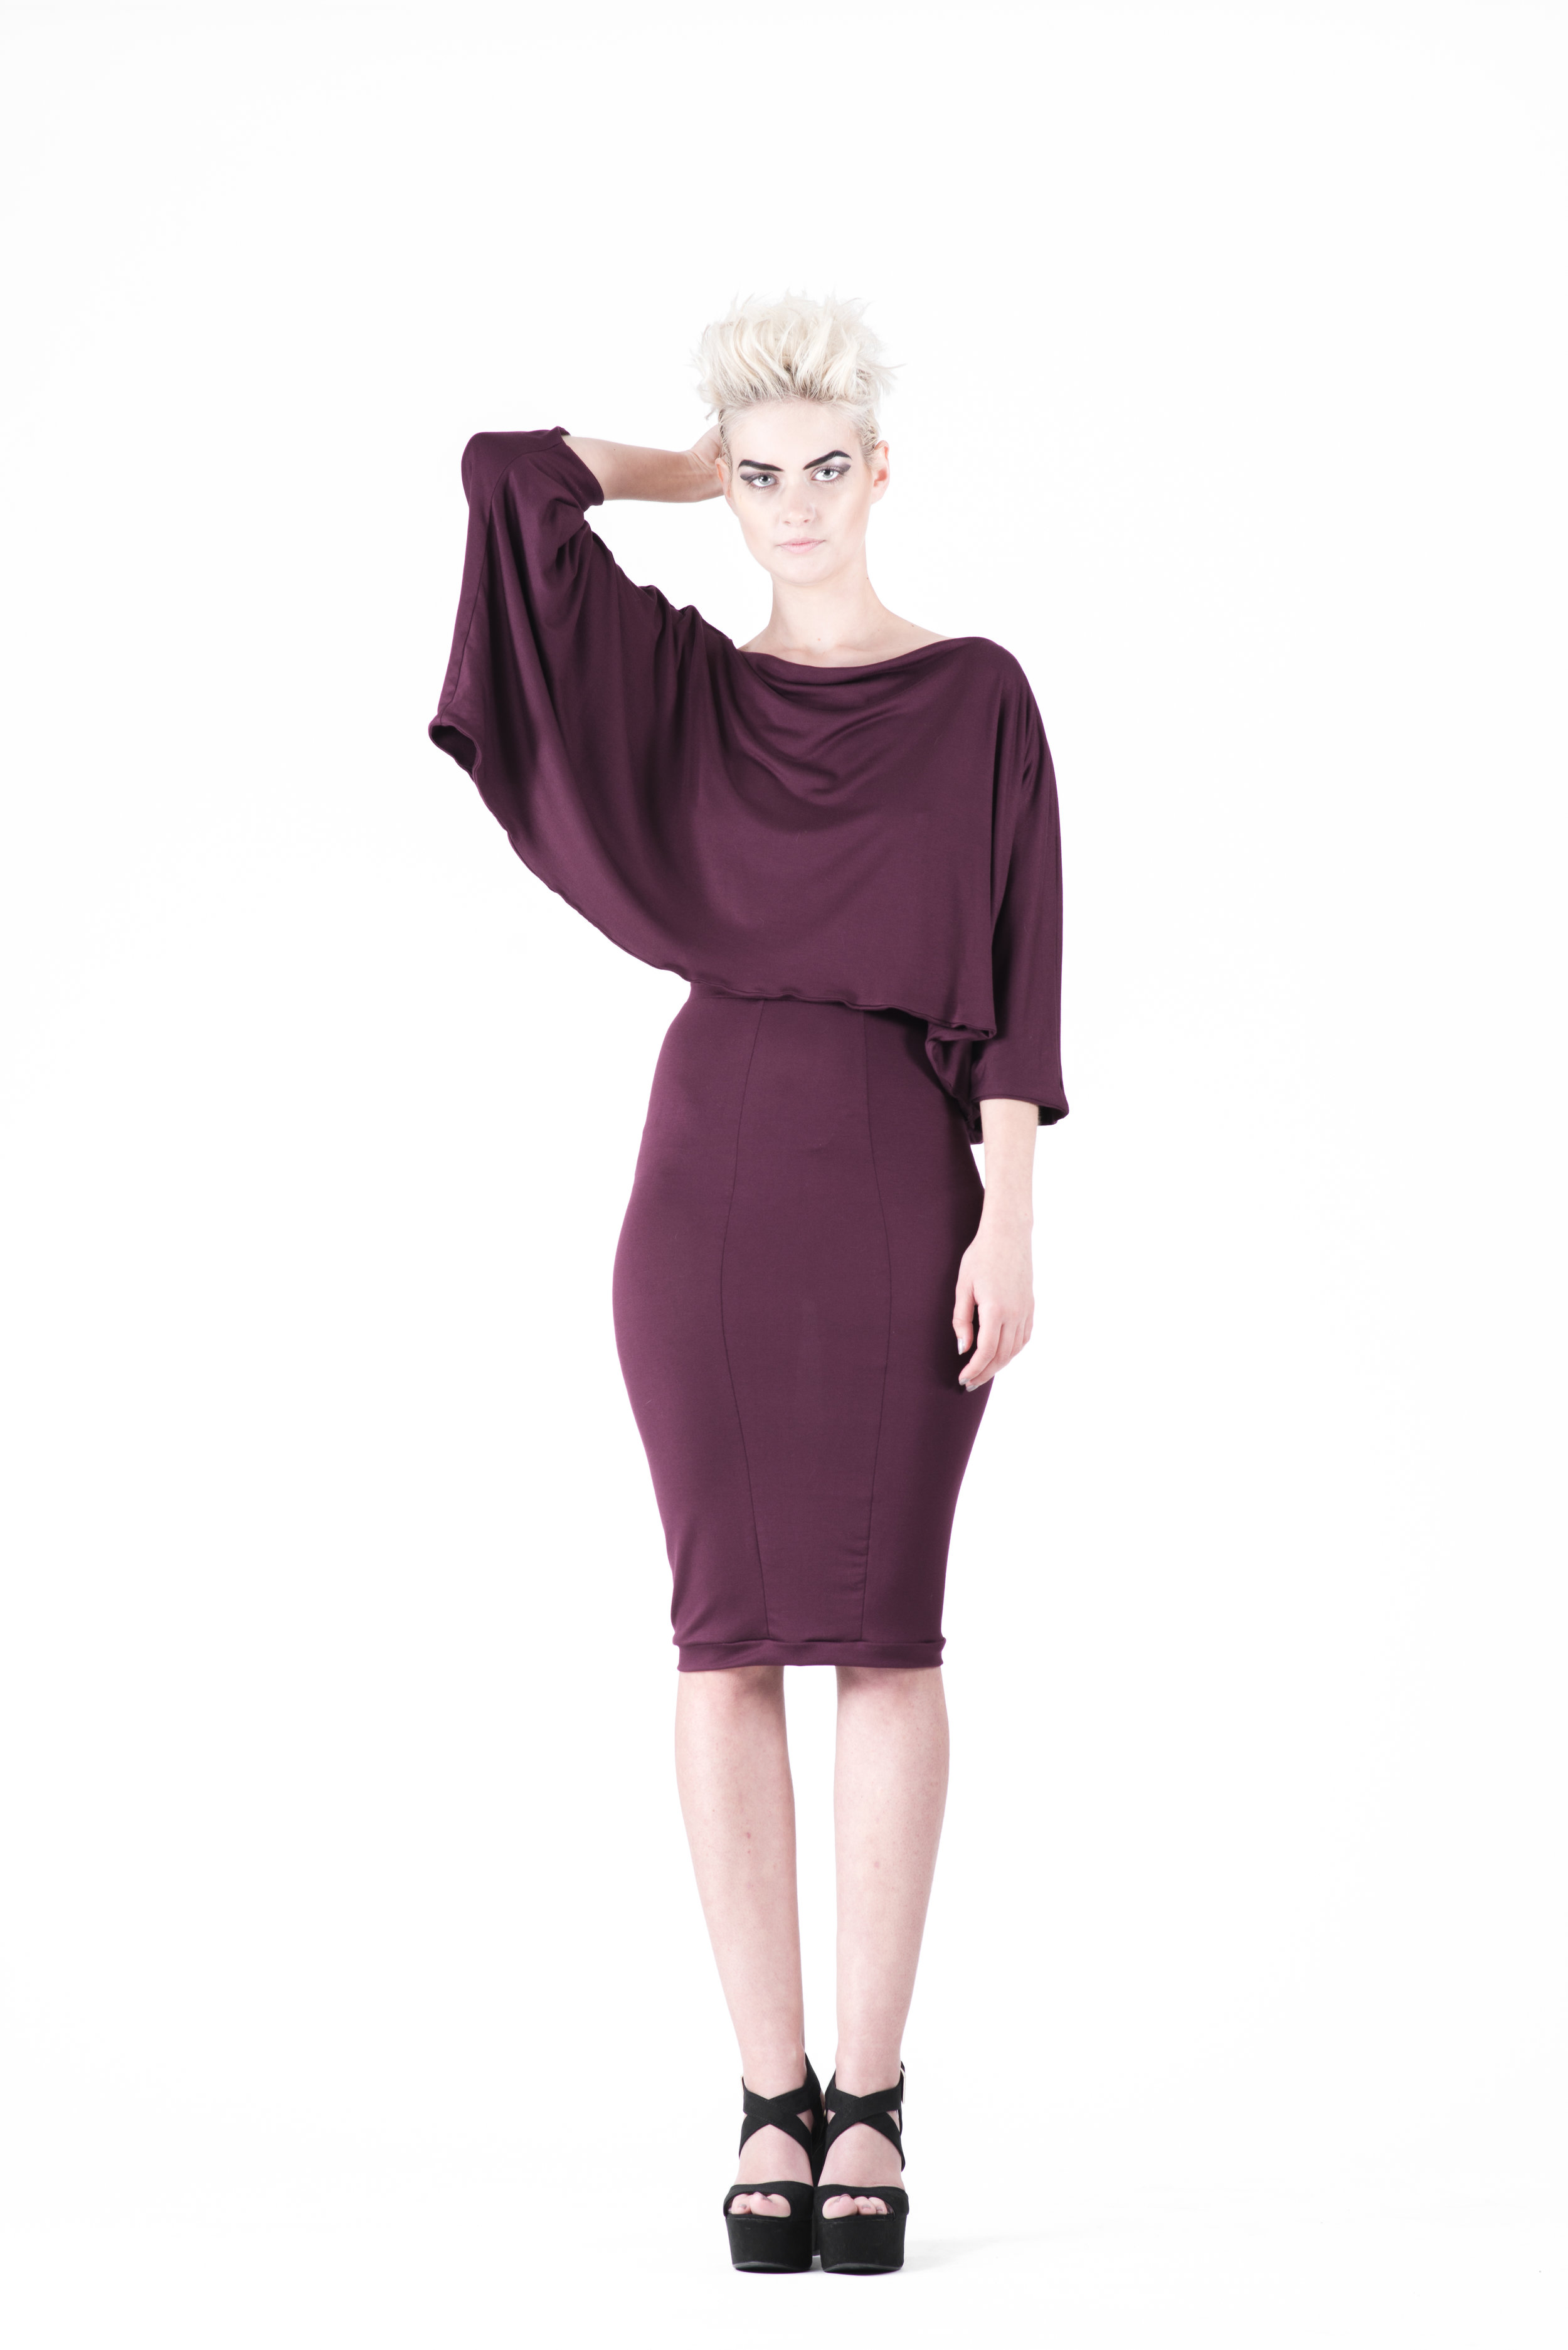 zaramia-ava-zaramiaava-leeds-fashion-designer-ethical-sustainable-tailored-minimalist-mika-plum-top-yuko-plum-versatile-drape-cowl-styling-womenswear-models-photoshoot-10